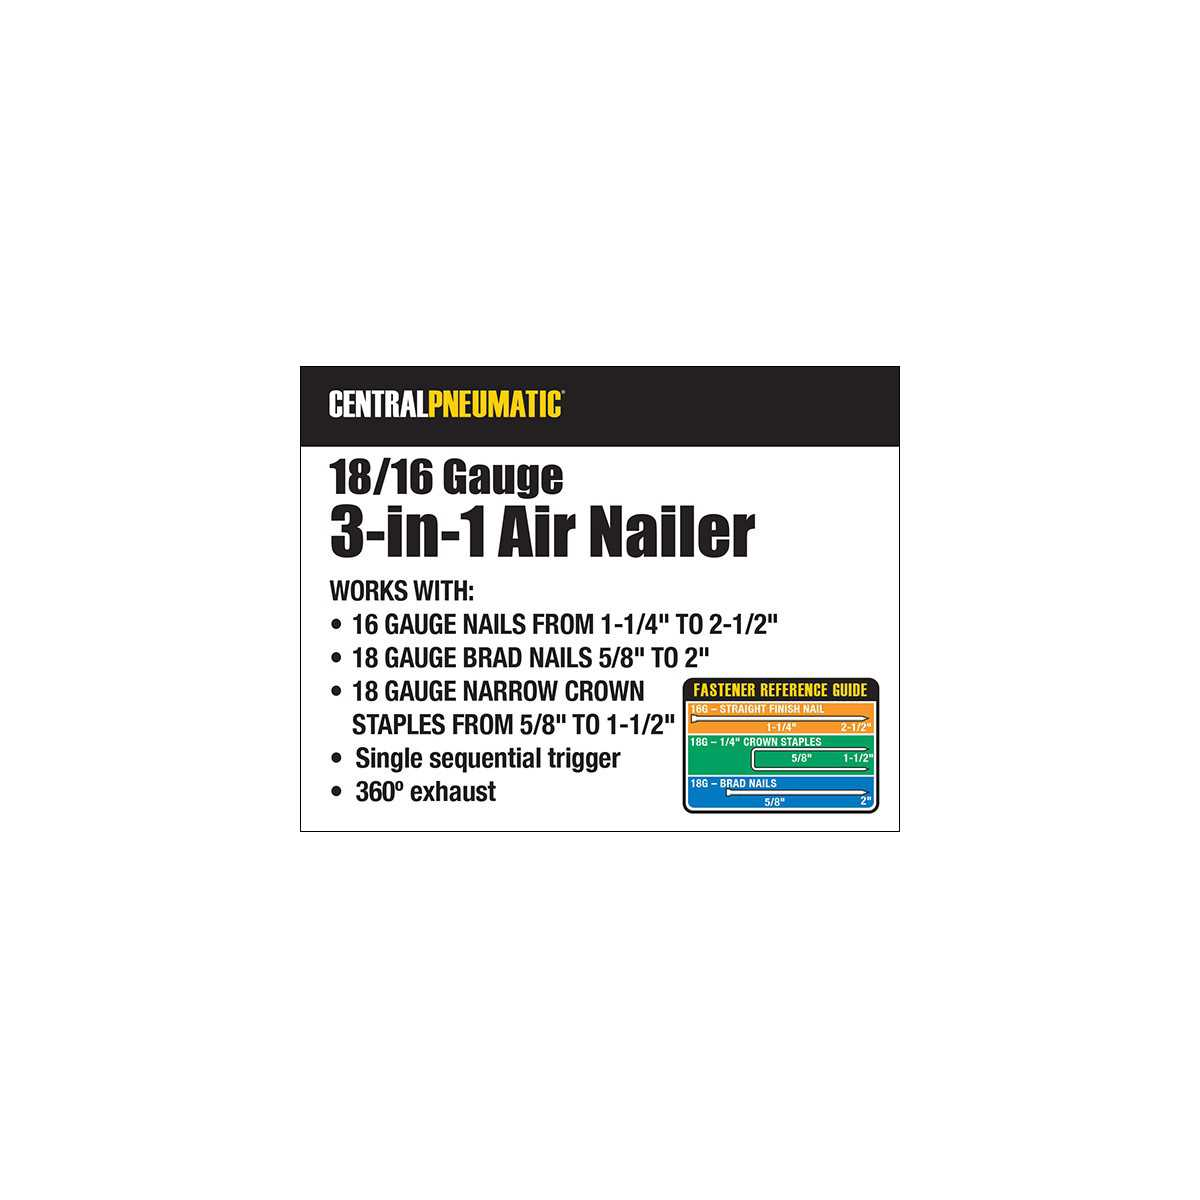 Central Pneumatic 16/18 Gauge 3-in-1 Air Nailer/Stapler